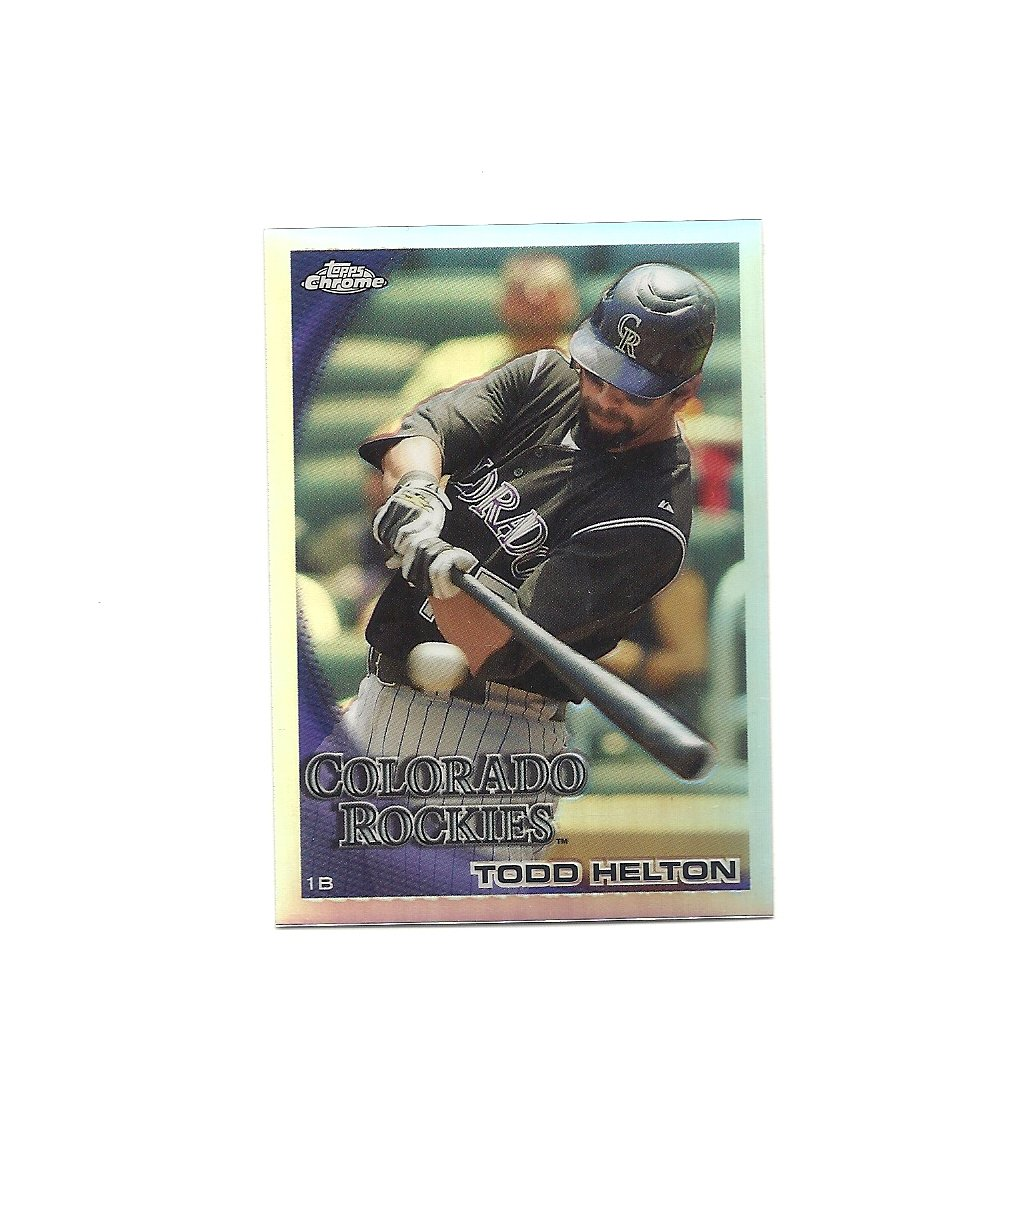 Todd Helton 2010 Topps Chrome Refractor #104 Colorado Rockies